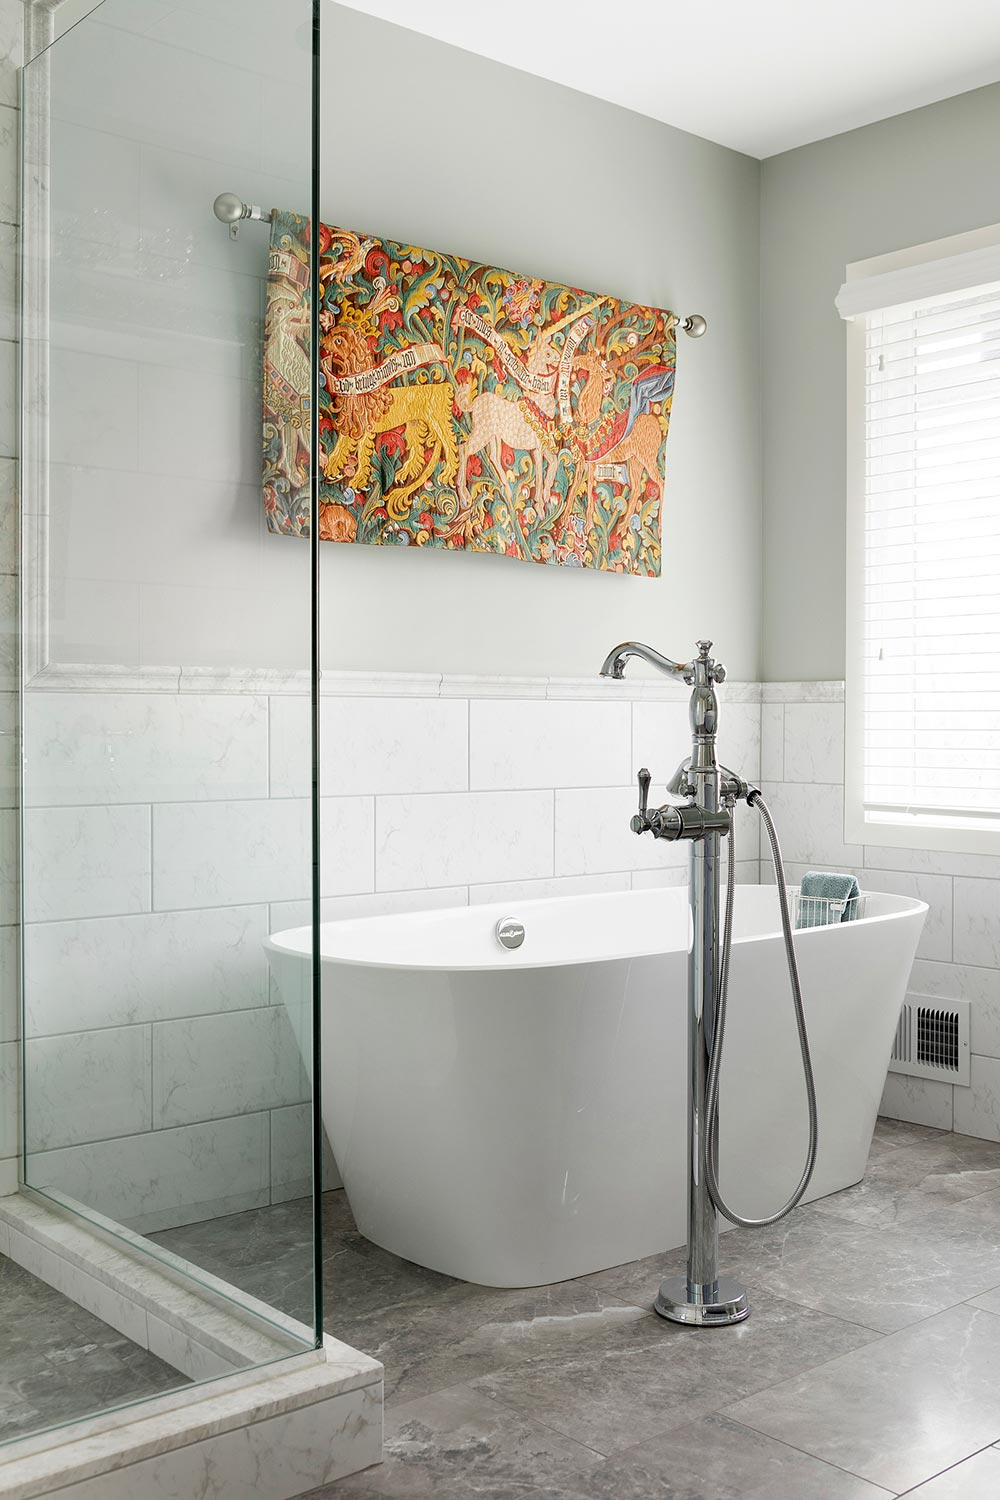 Large freestanding tub below a tapestry wall hanging